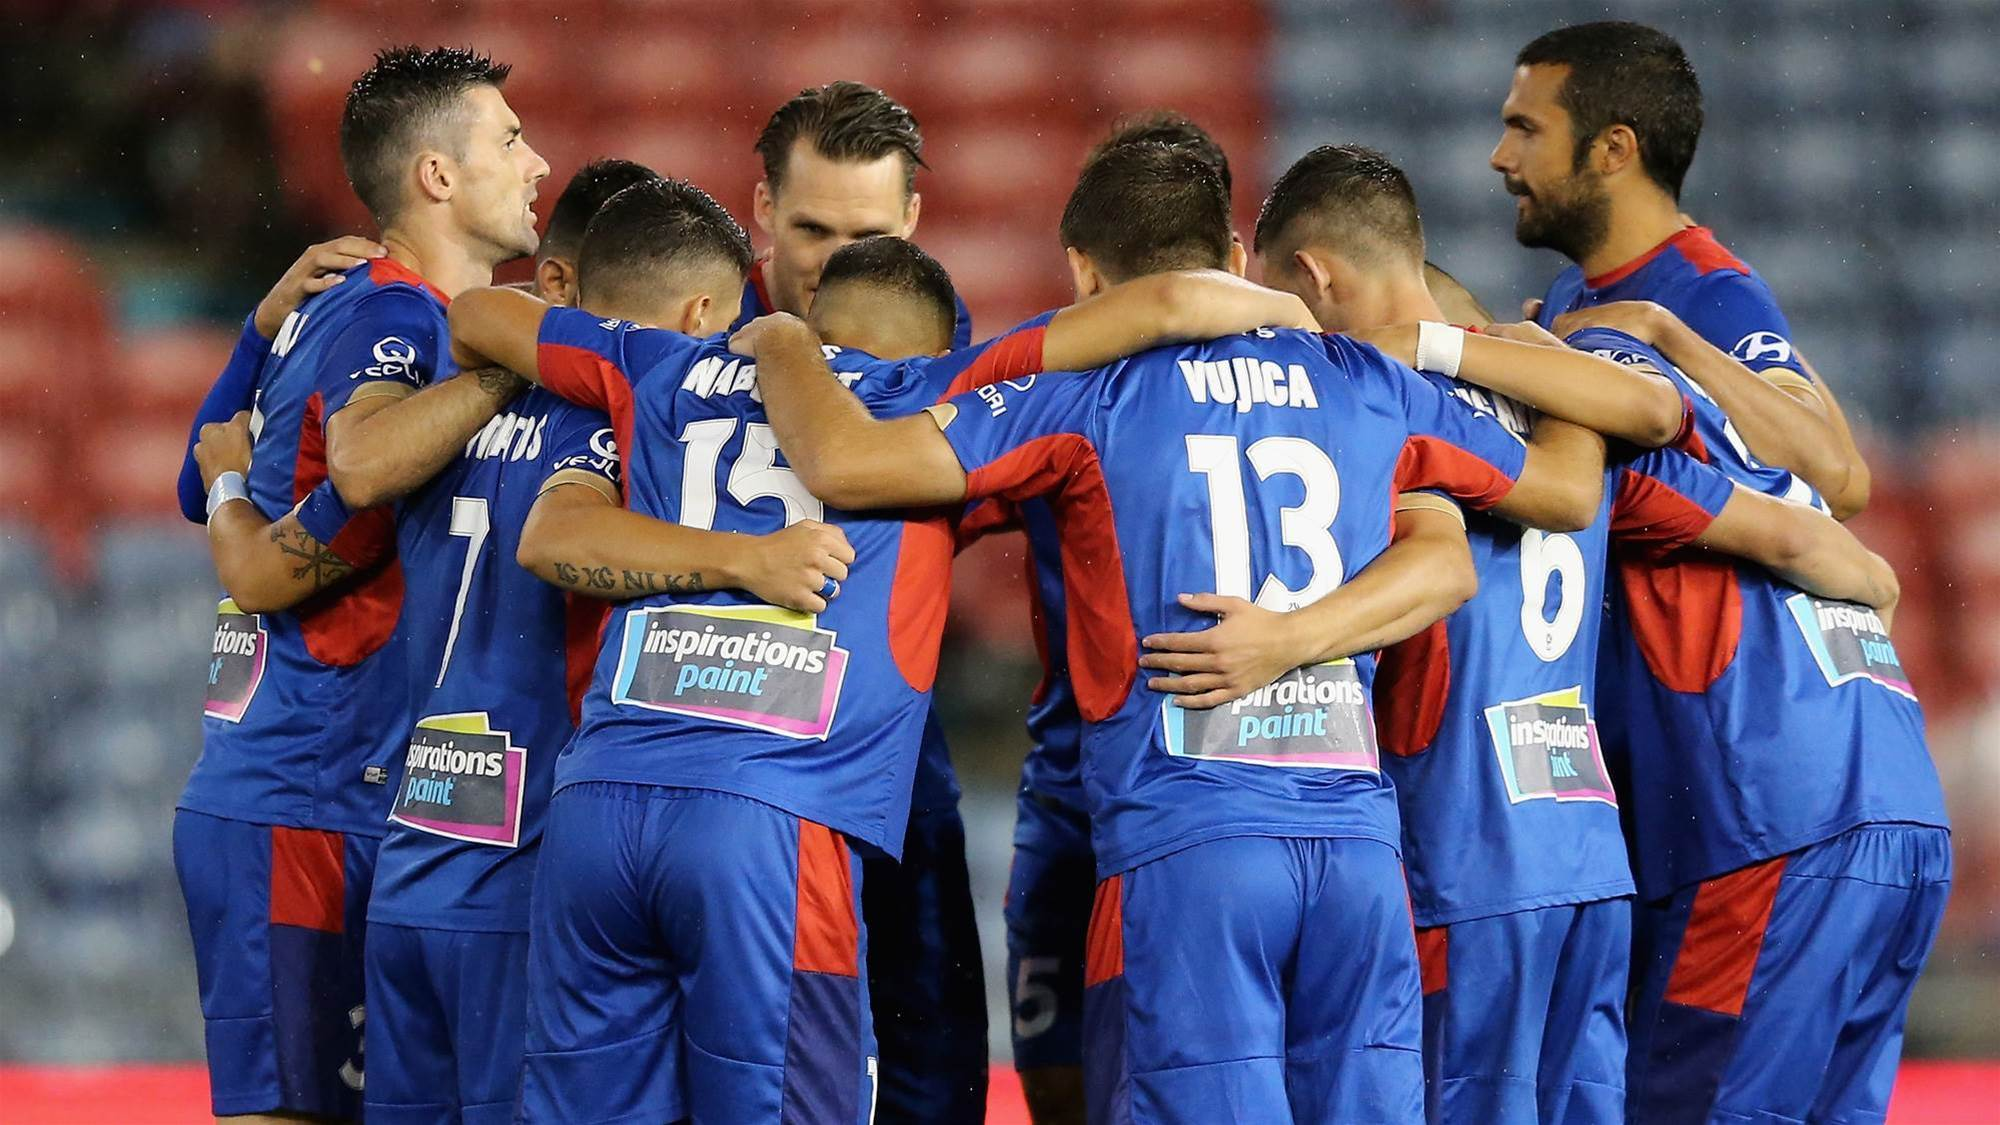 Injury-hit Newcastle Jets running out of players for Sydney FC clash